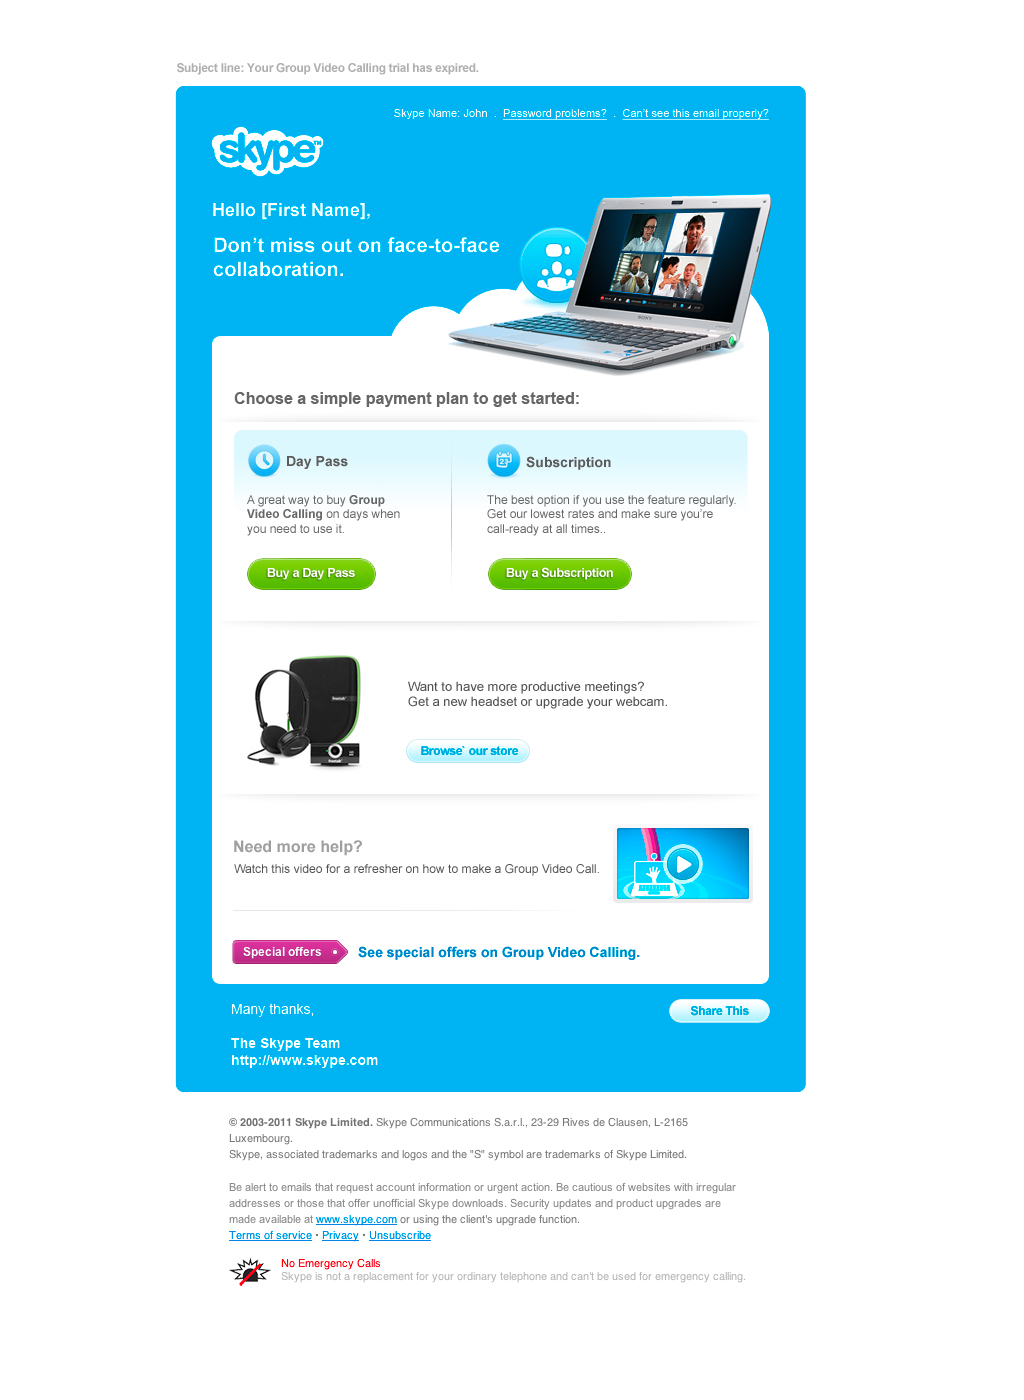 Skype_GVC_TRIAL_IND_Expired_Email